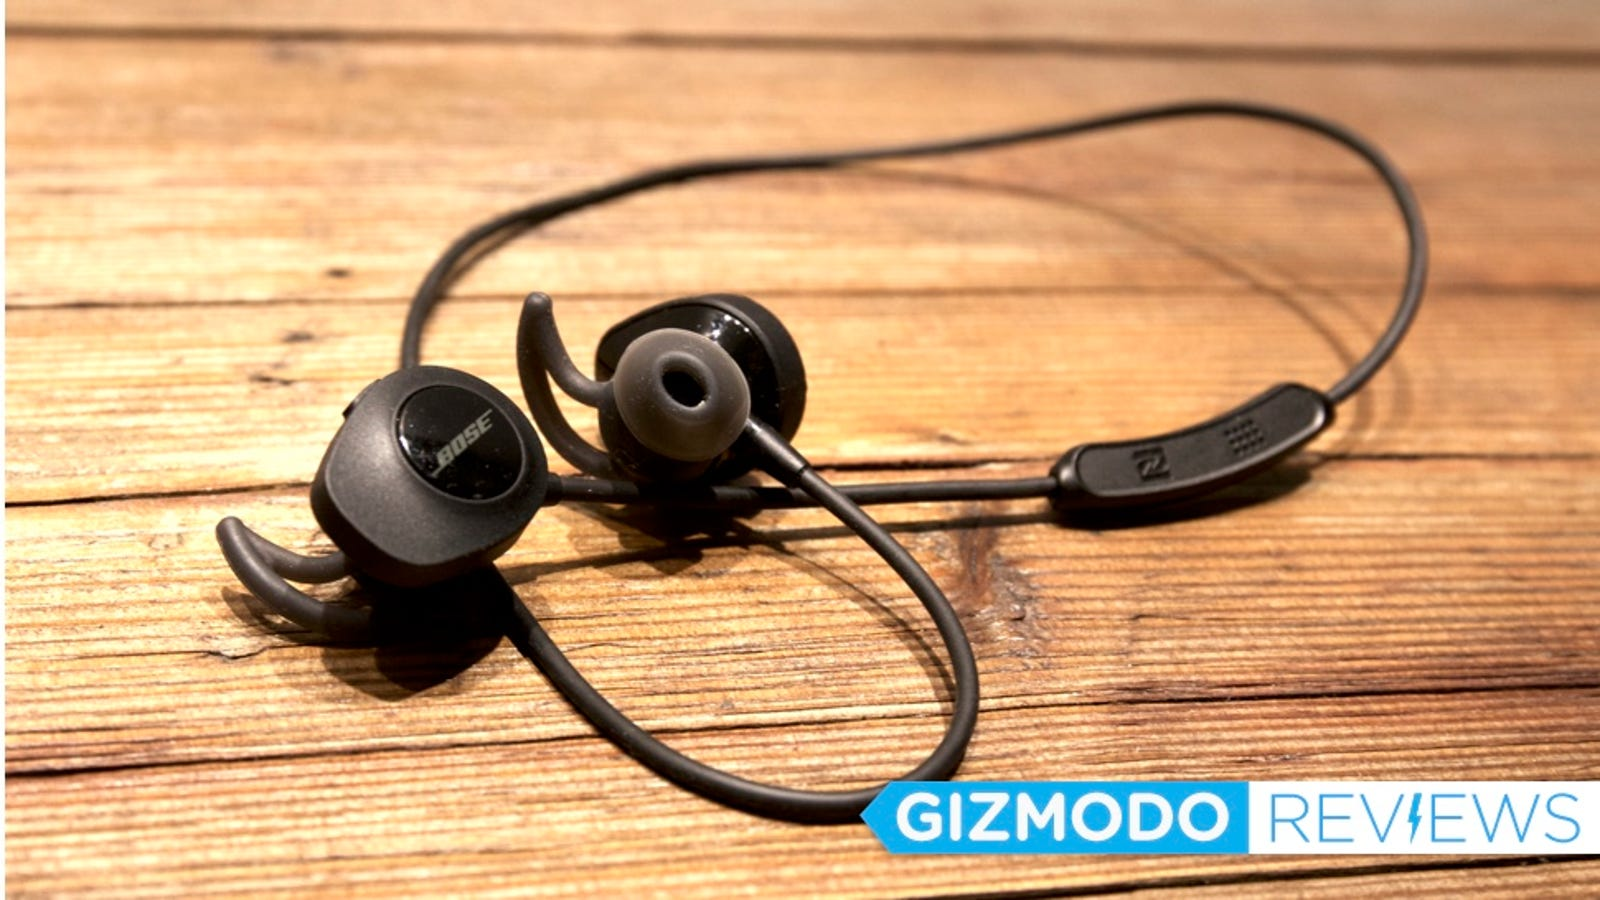 headphone amp wifiman - Bose Wireless SoundSport Earbuds Are Great for the Gym But Not Much Else